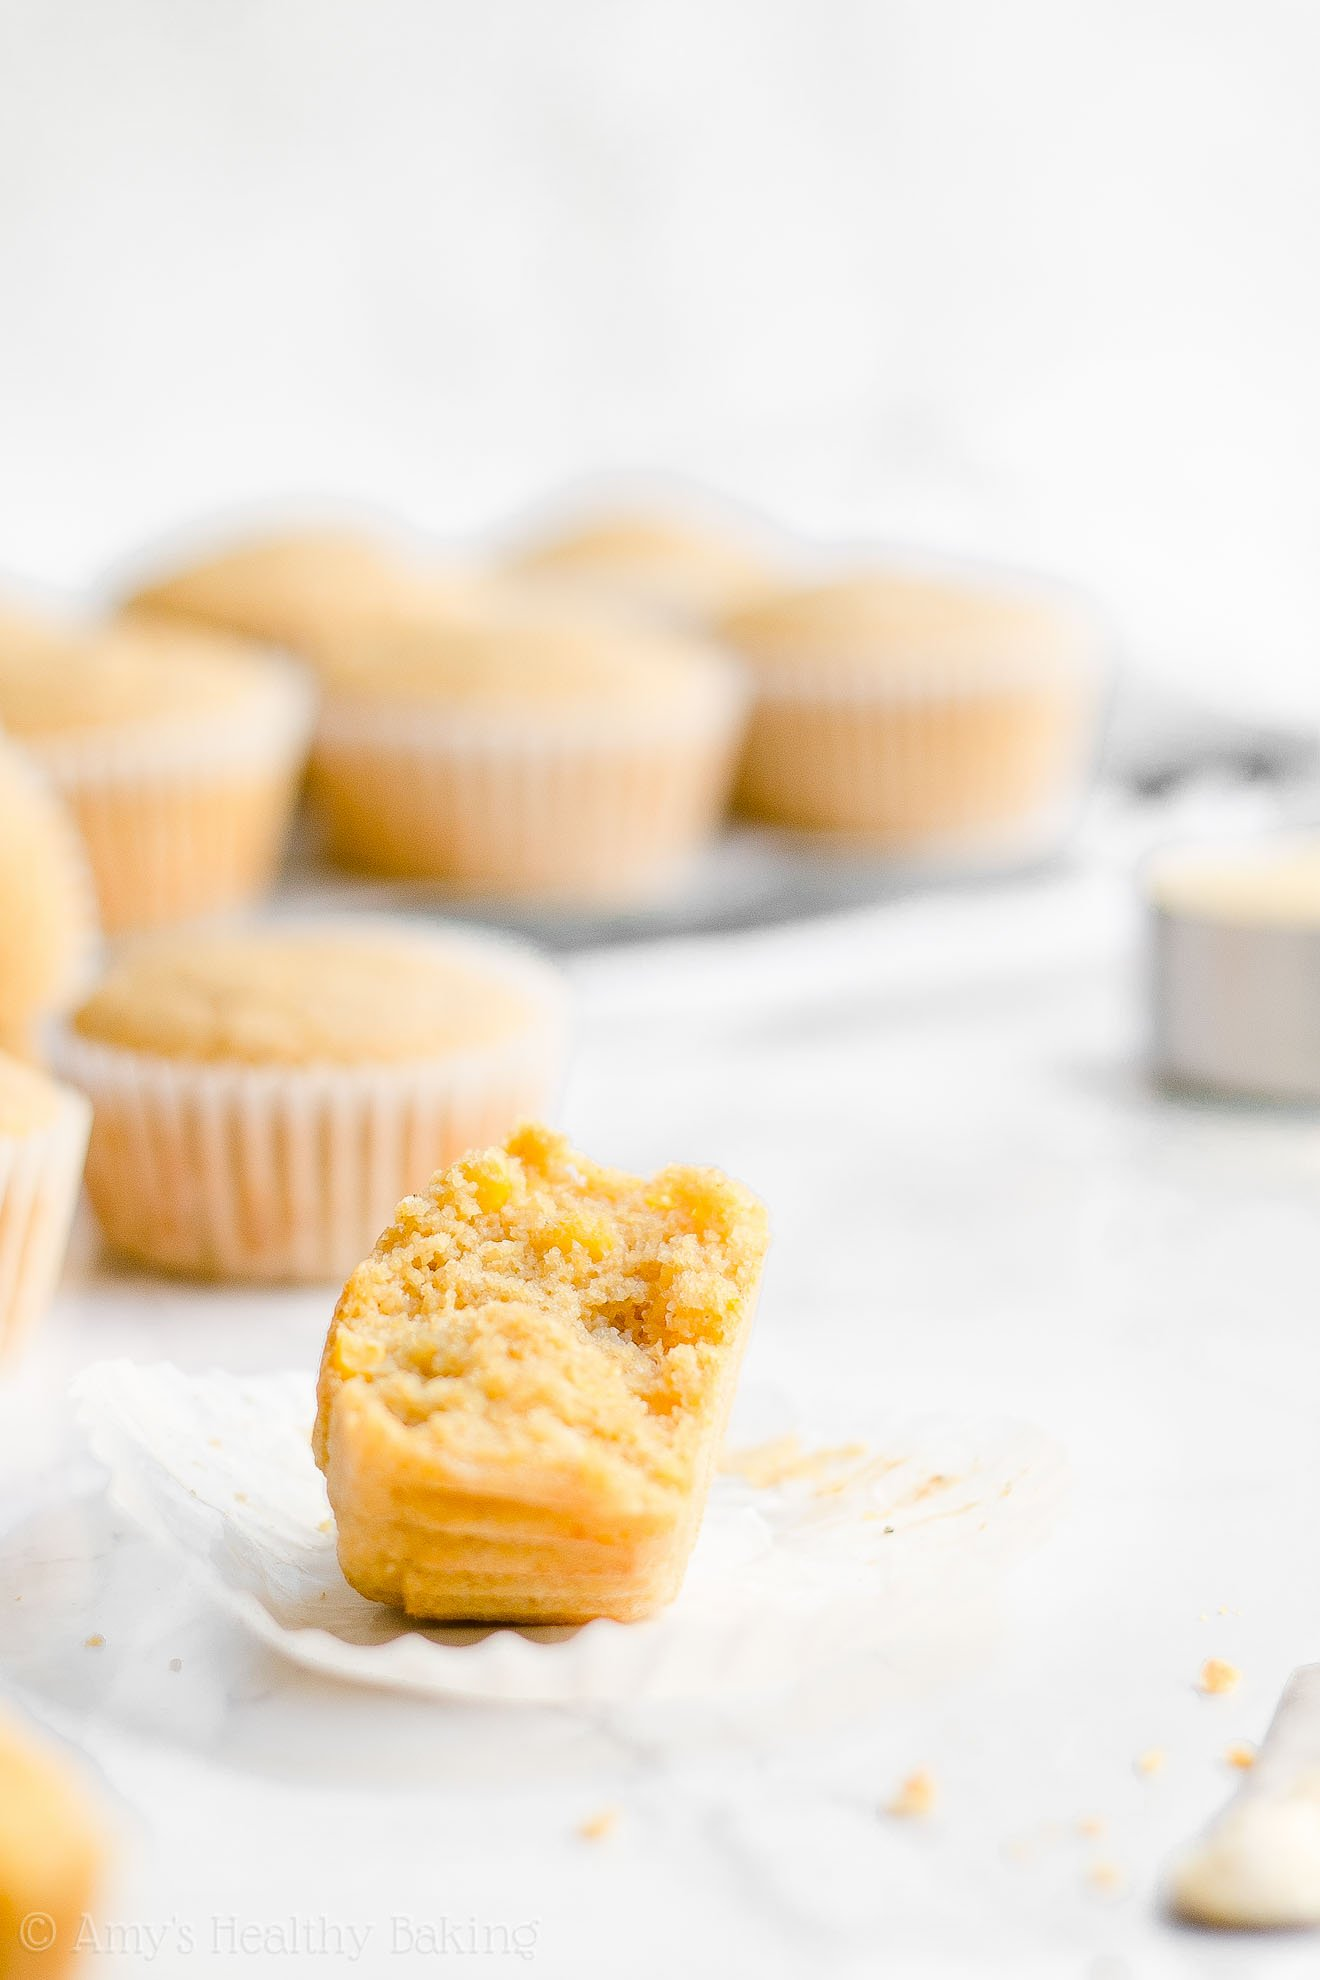 ULTIMATE Healthy Low Fat Low Calorie Cornbread Muffins with Whole Corn